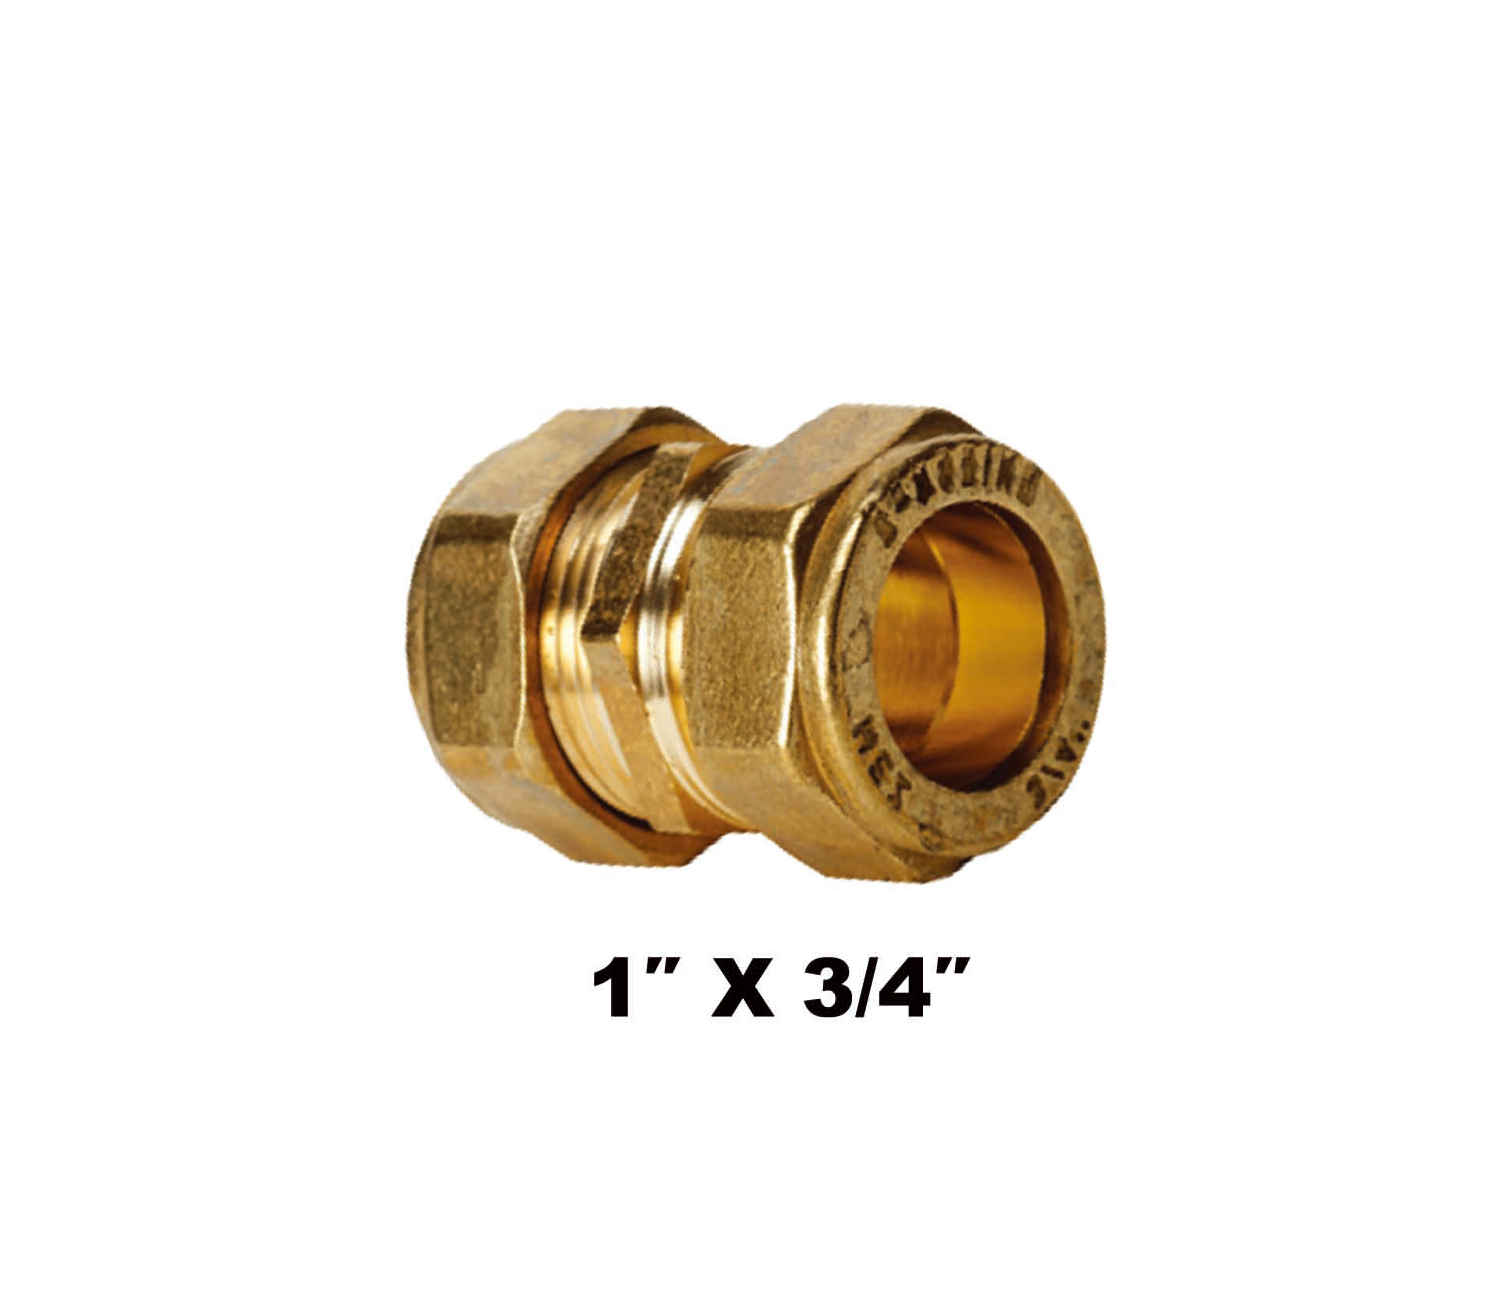 "Straight Compression Coupler C X C 1″ X 3/4"" (31032)"